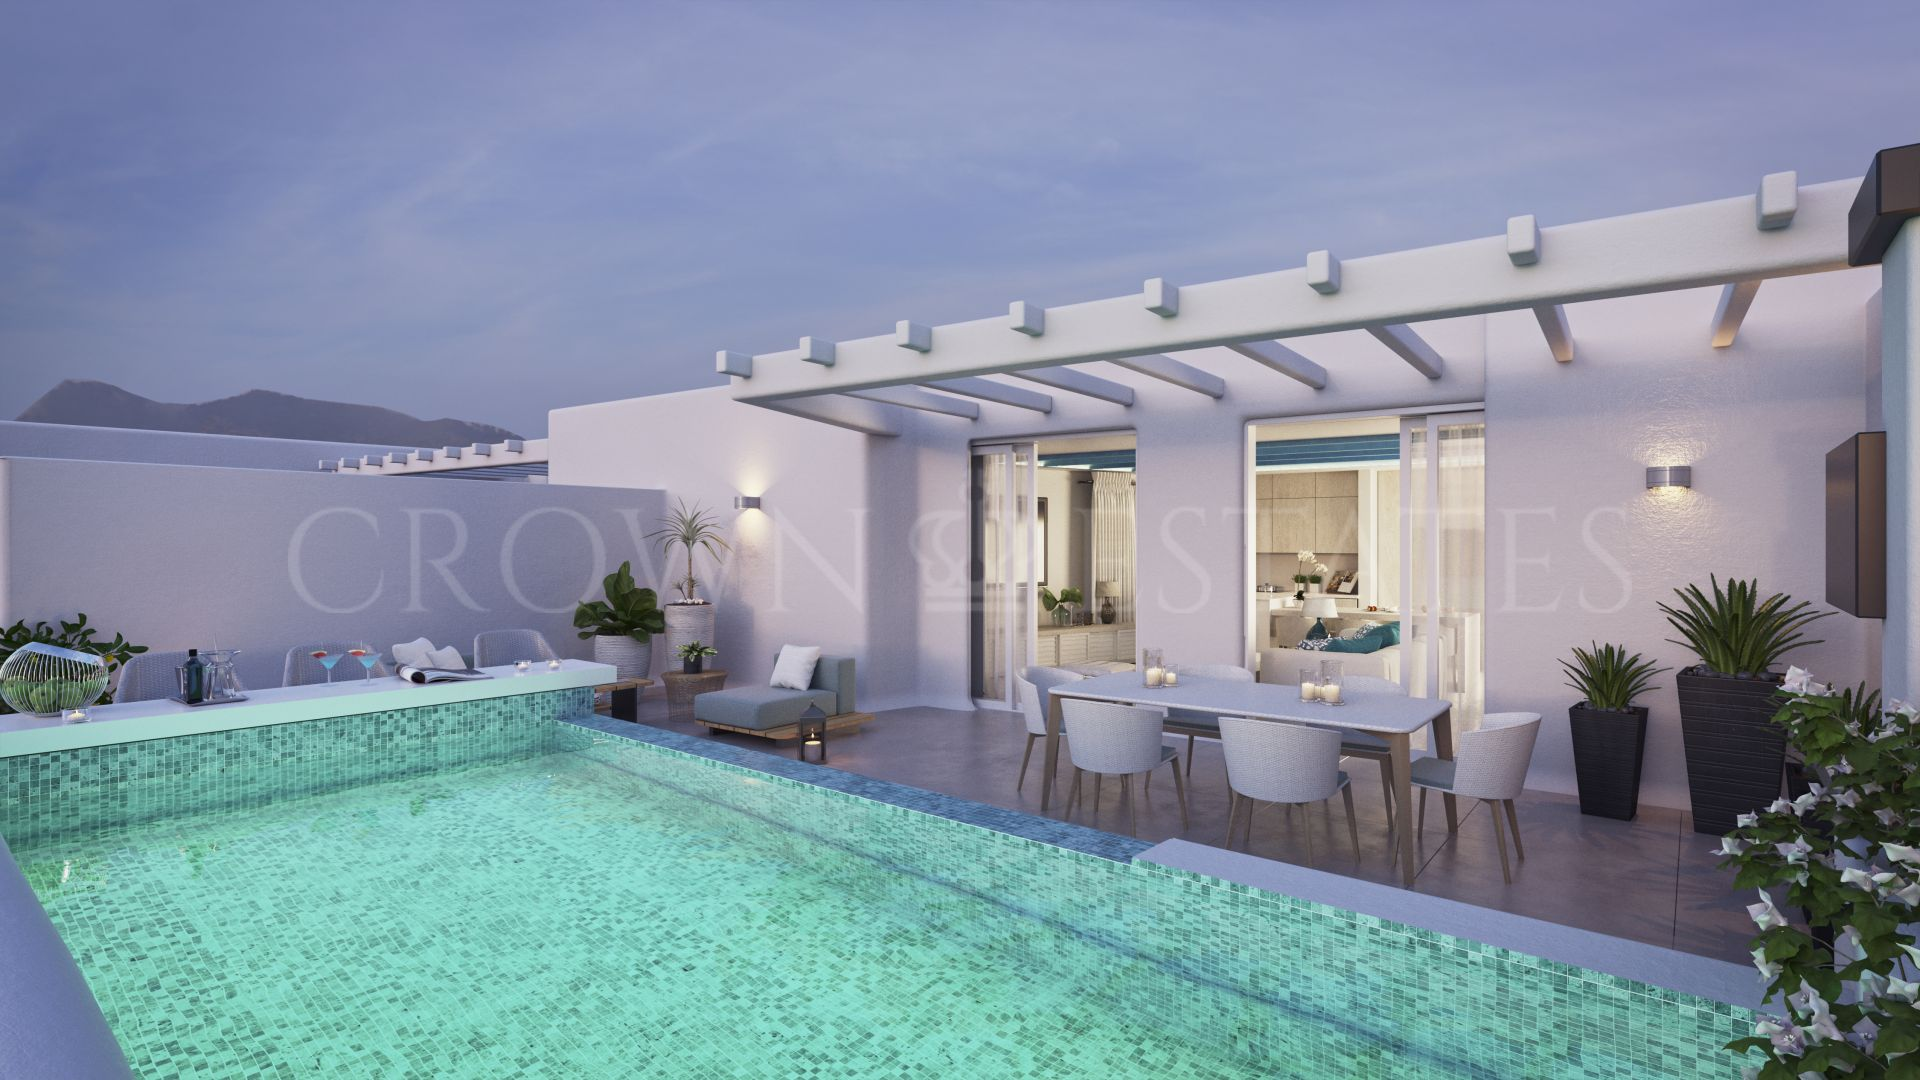 Excellent project in the historic center of the city of Marbella